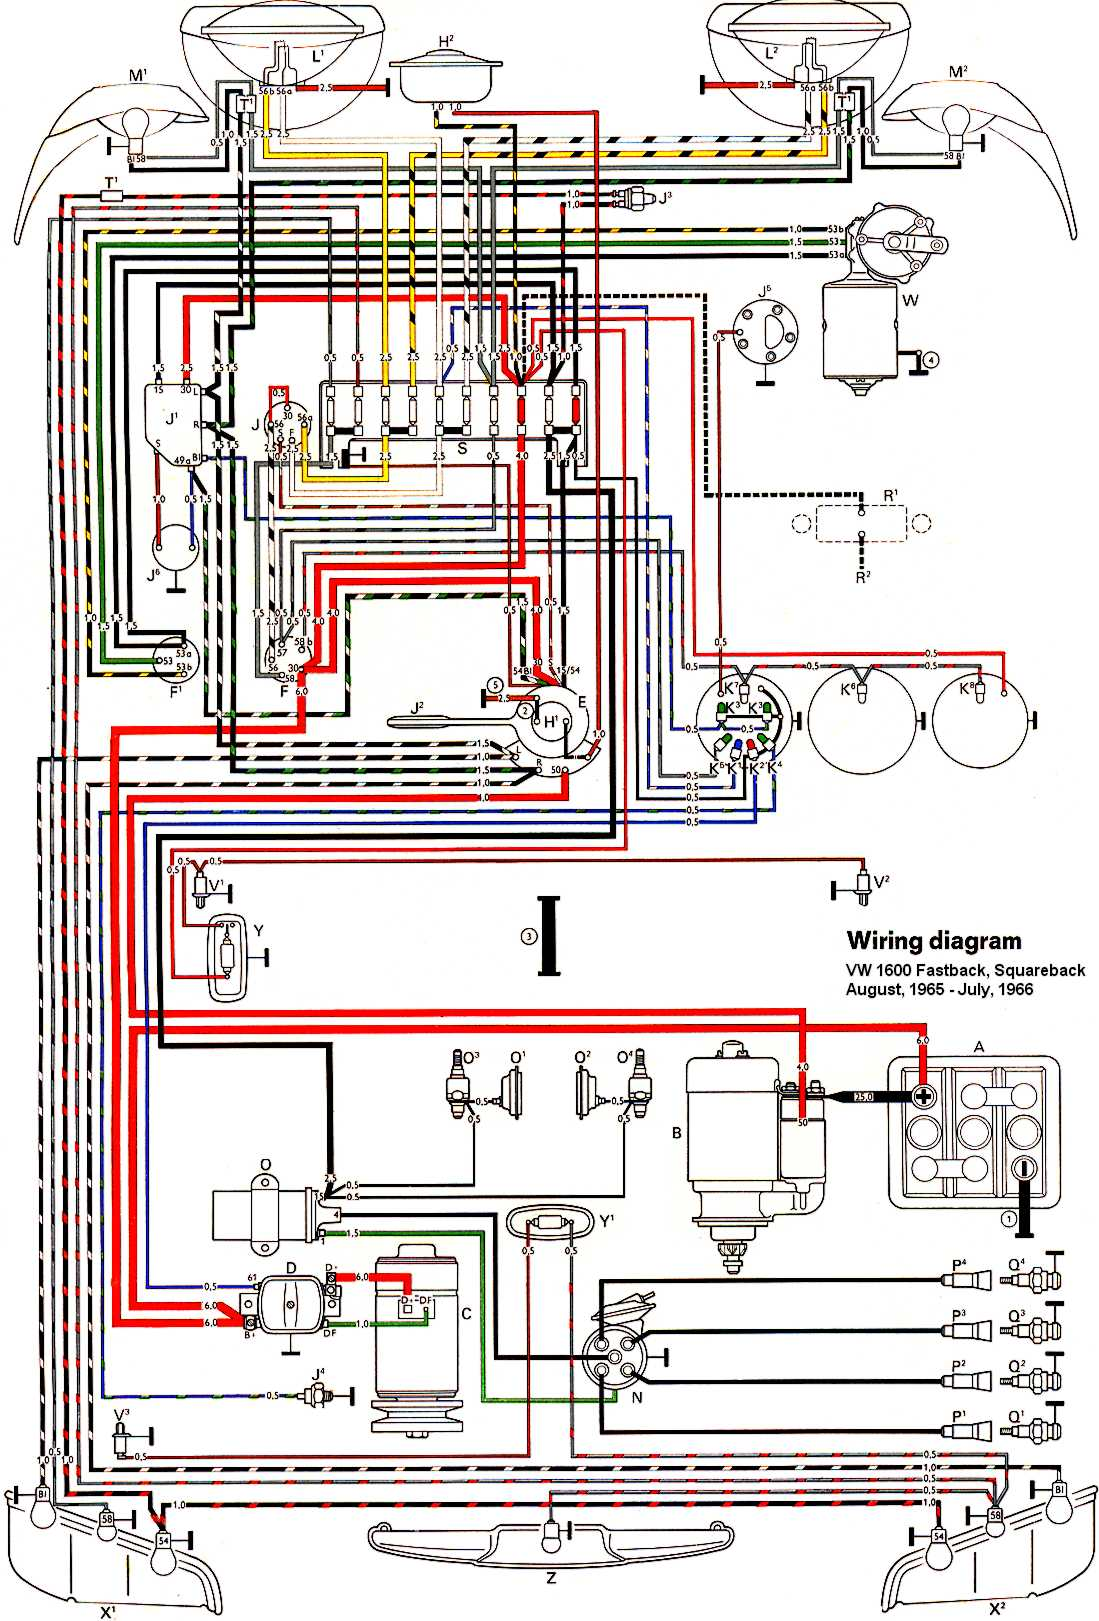 type3_1600_66 wiring harness 1963 vw wiring diagram at alyssarenee.co